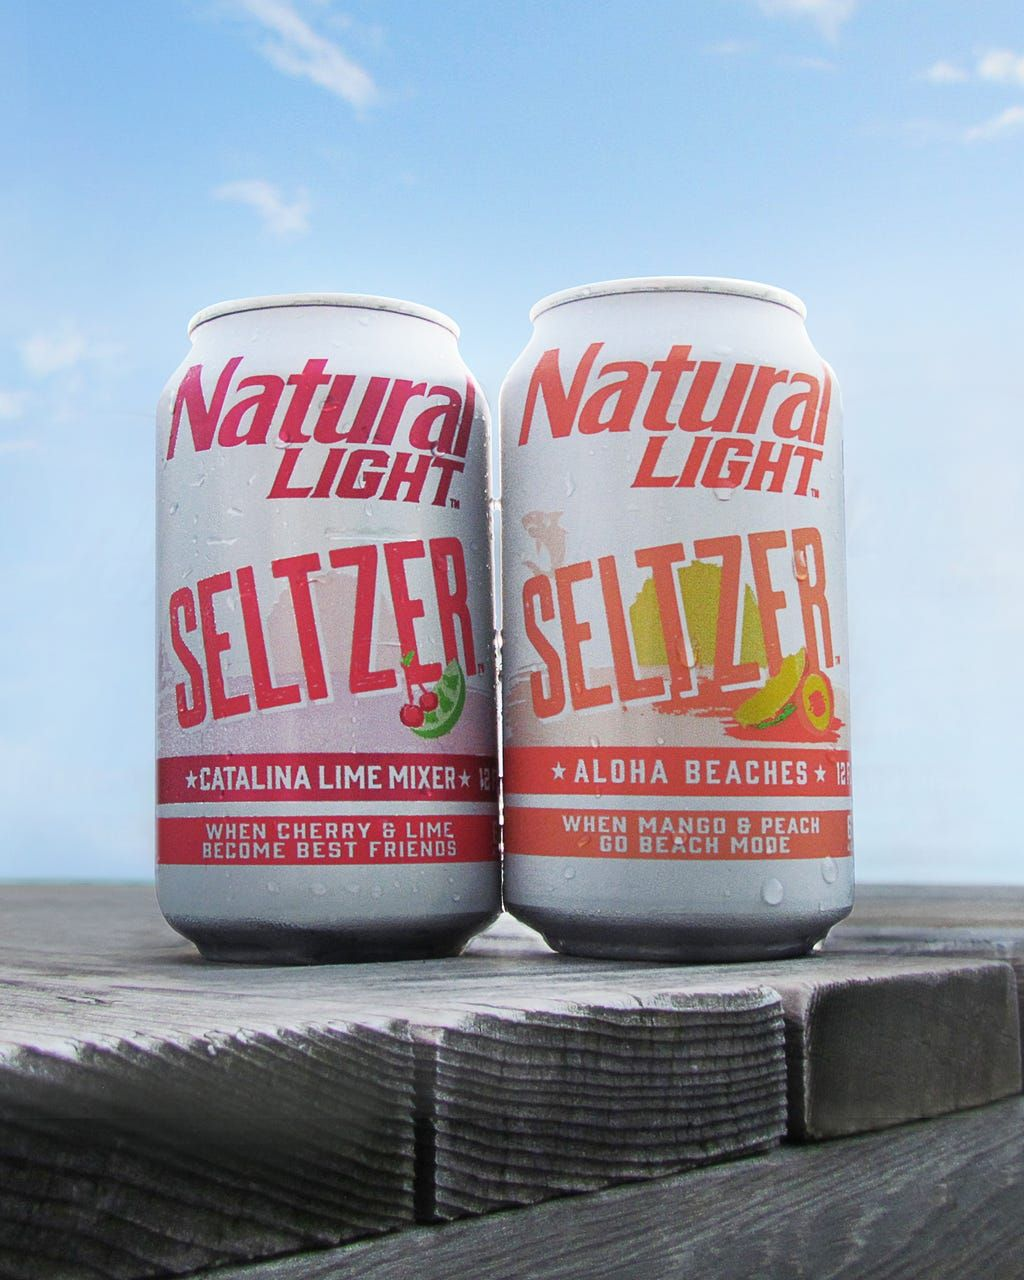 25 Spiked Seltzer Brands To Sip On Now In 2020 Spiked Seltzer Hard Seltzer Seltzer